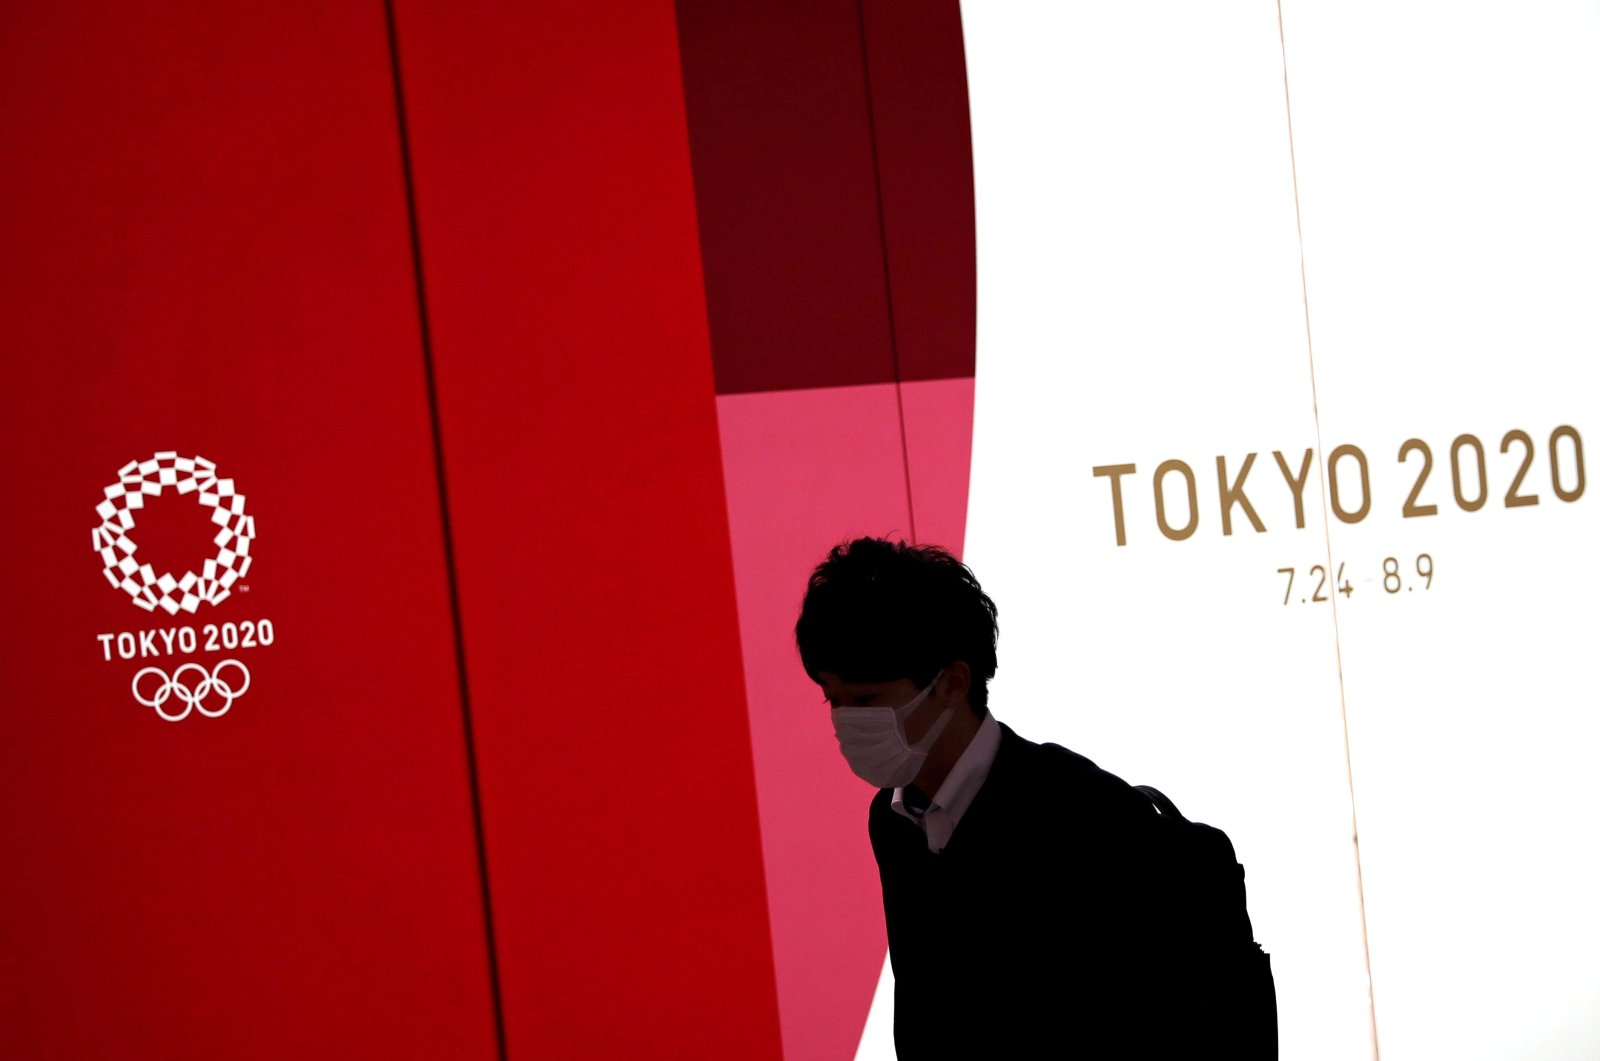 A man wearing a protective face mask during the COVID-19 walks past the upcoming Tokyo 2020 Olympics decoration board in Tokyo, Japan, March 23, 2020. (Reuters Photo)